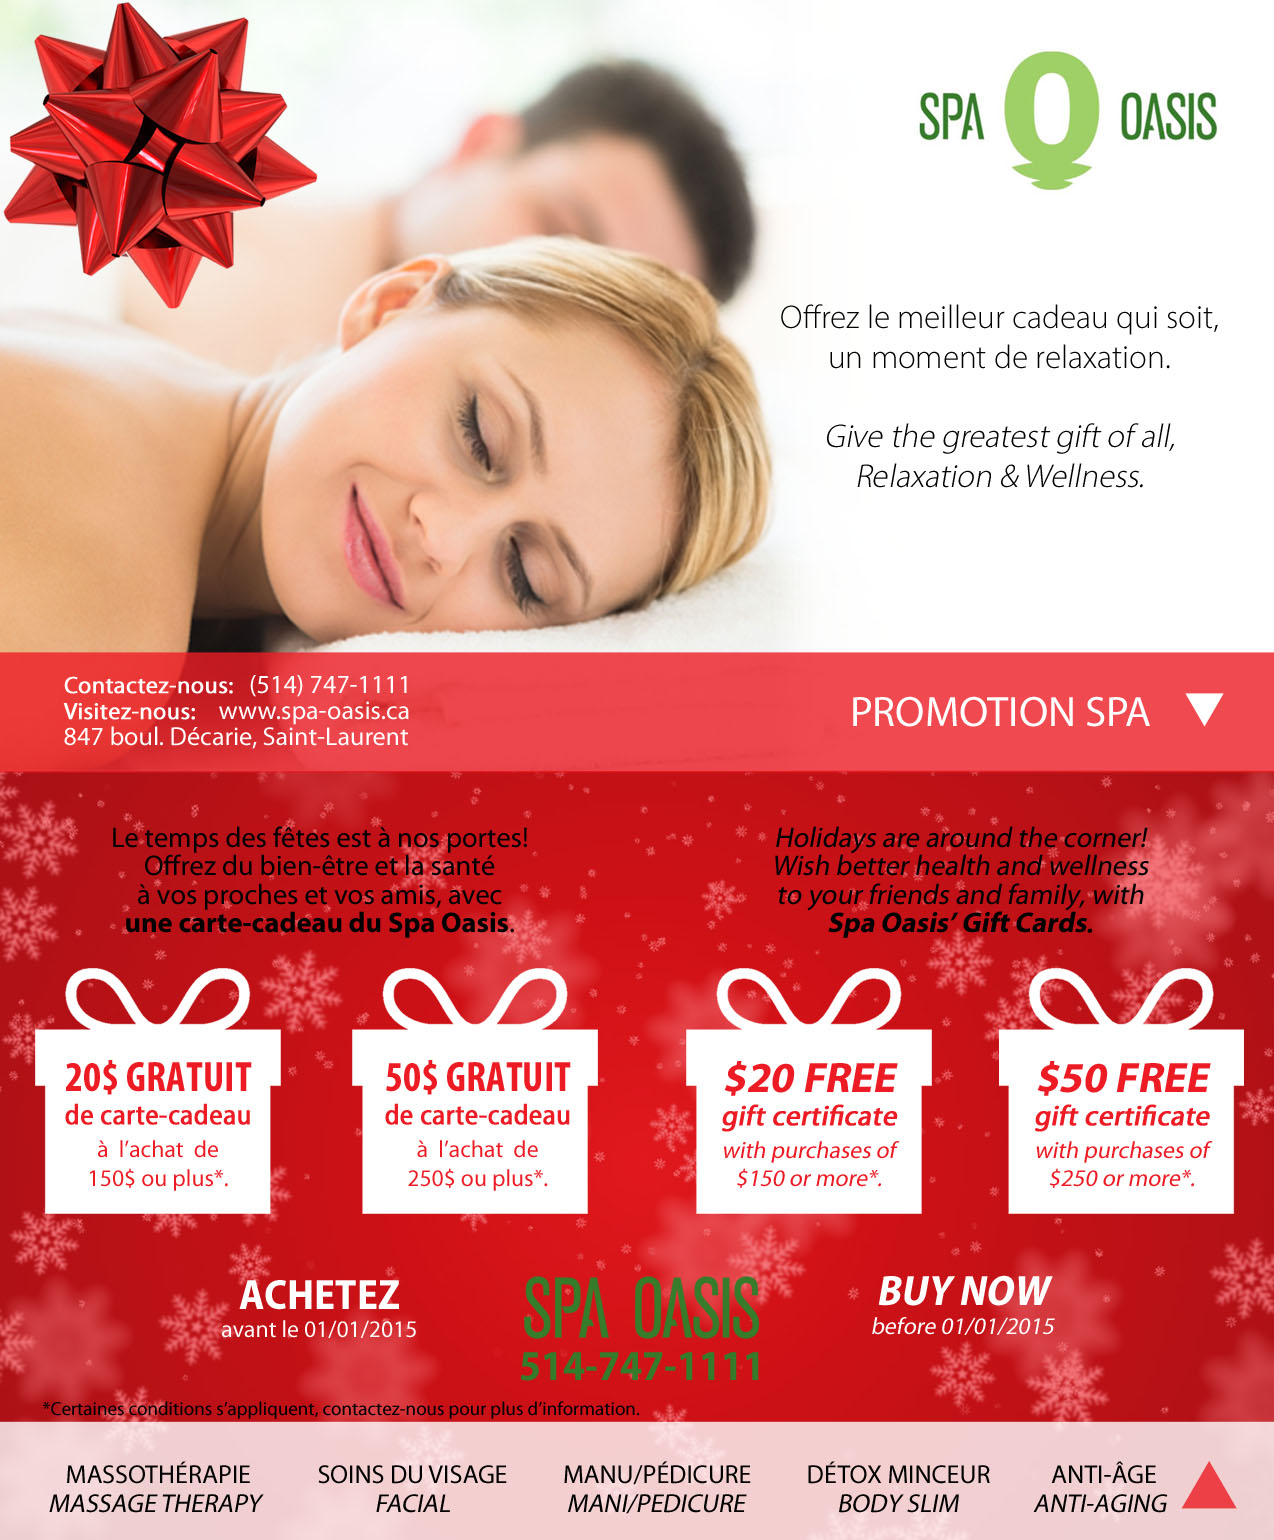 montreal-spa-oasis-holiday-promotion-for-christmas-gift-17